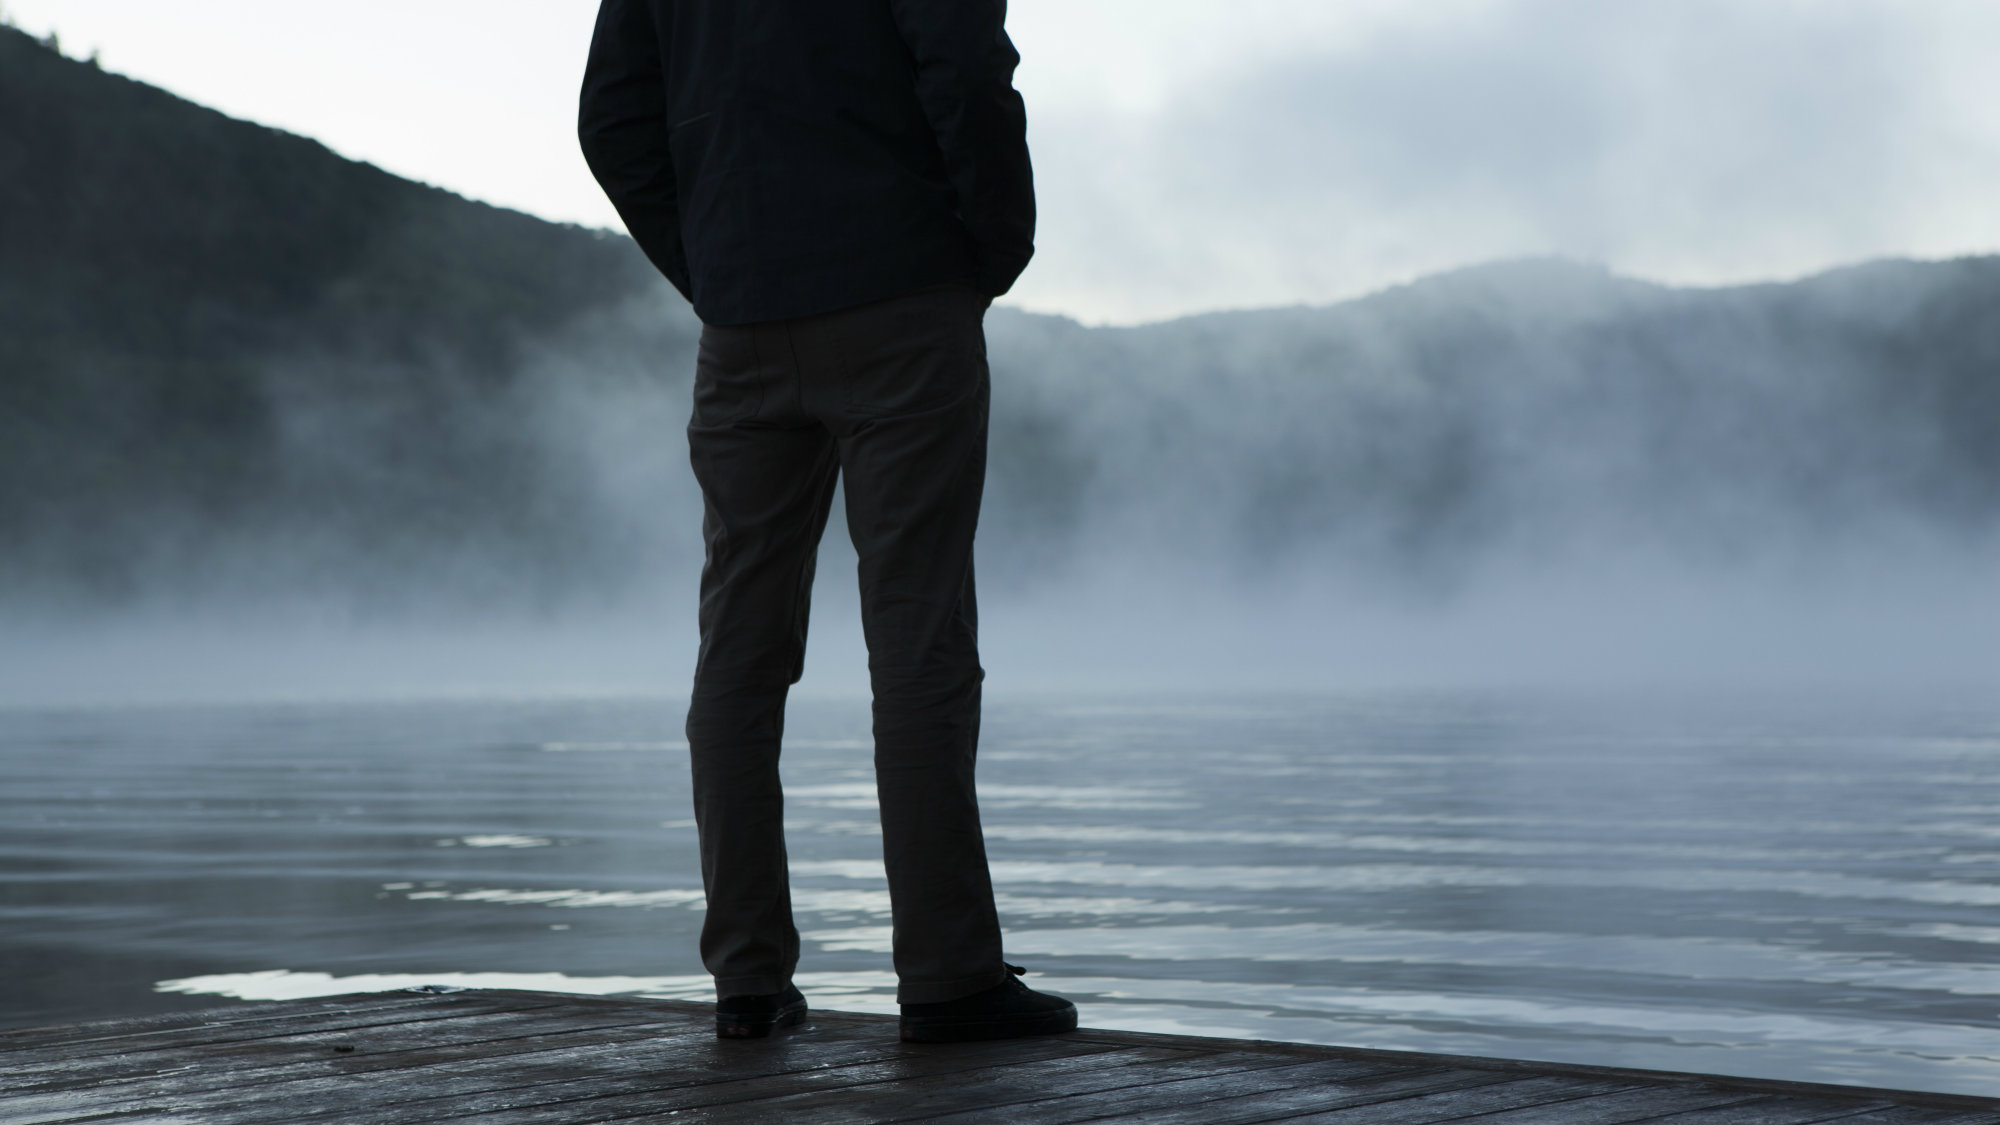 A man overlooks a lake where mist is rising